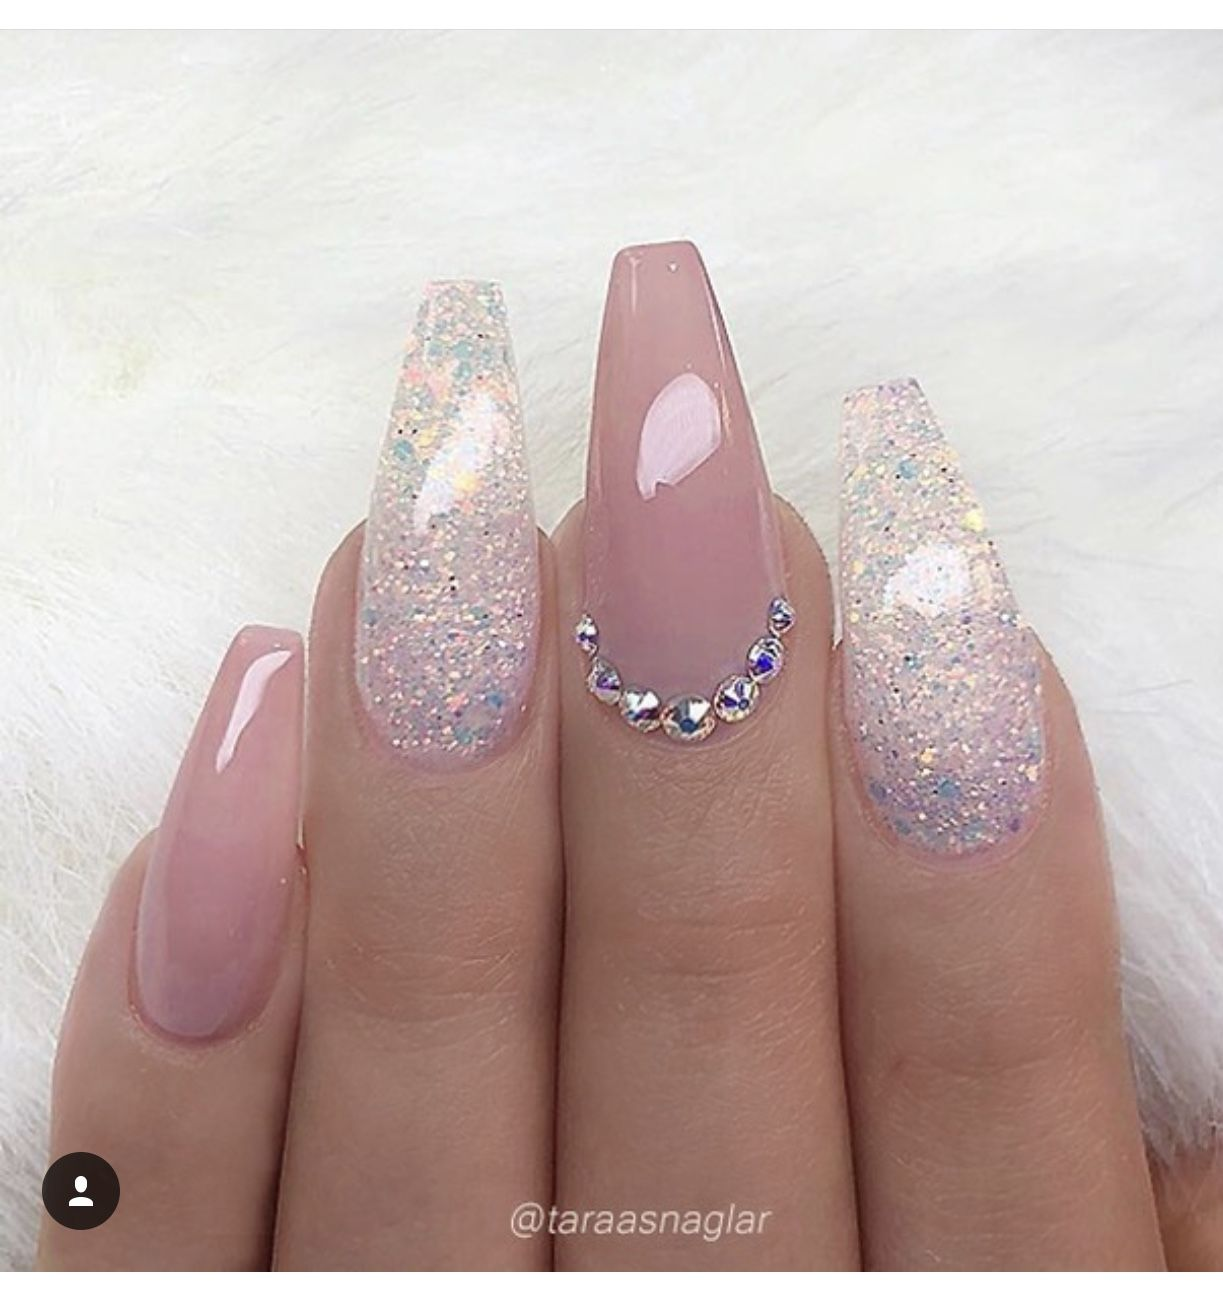 Pin By Cecily Bochannek On Pink: Pin By Cecily Chavez On NAILS ϸ� ϸ� In 2019